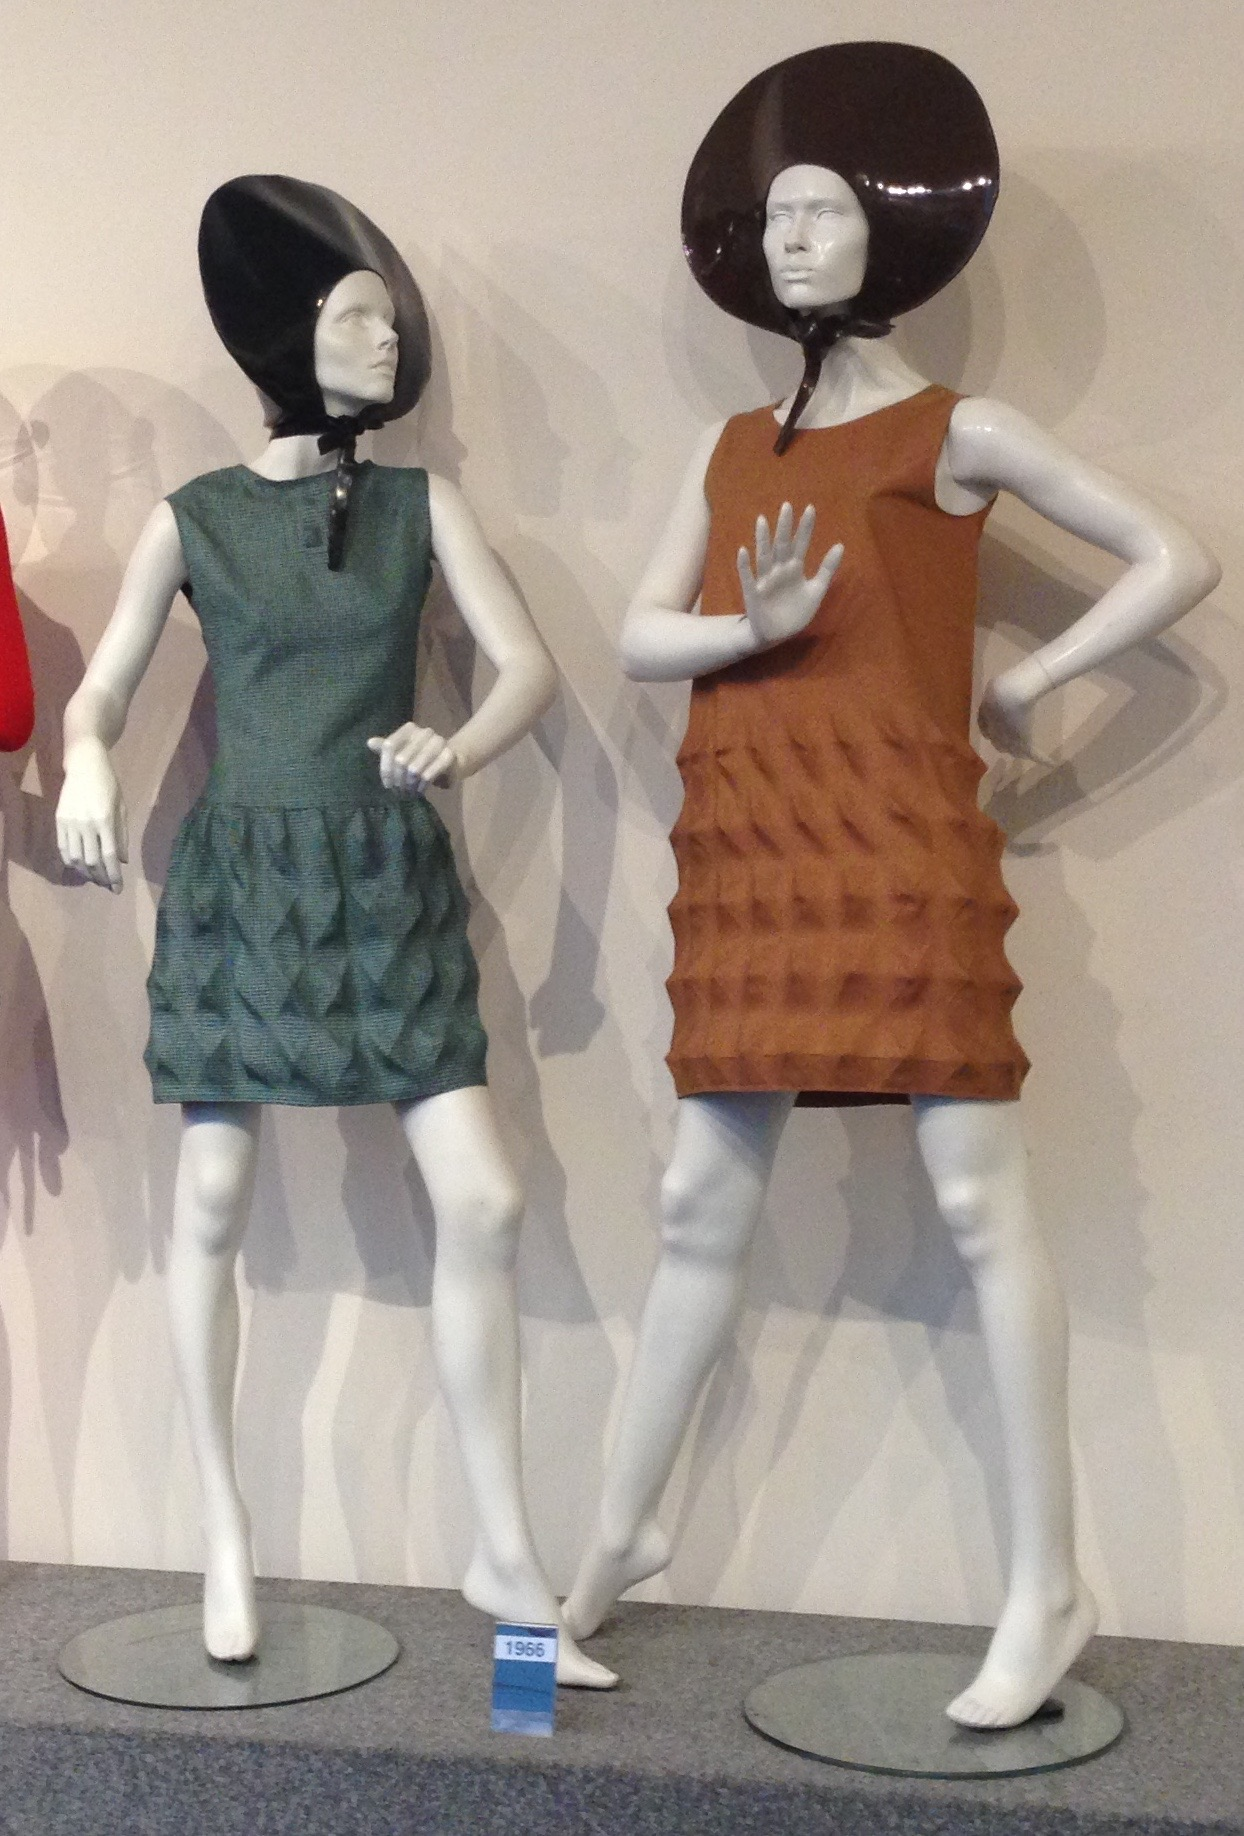 Pierre Cardin 1968 dresses made out of 'Cardine' fabric, Musée Pierre Cardin.